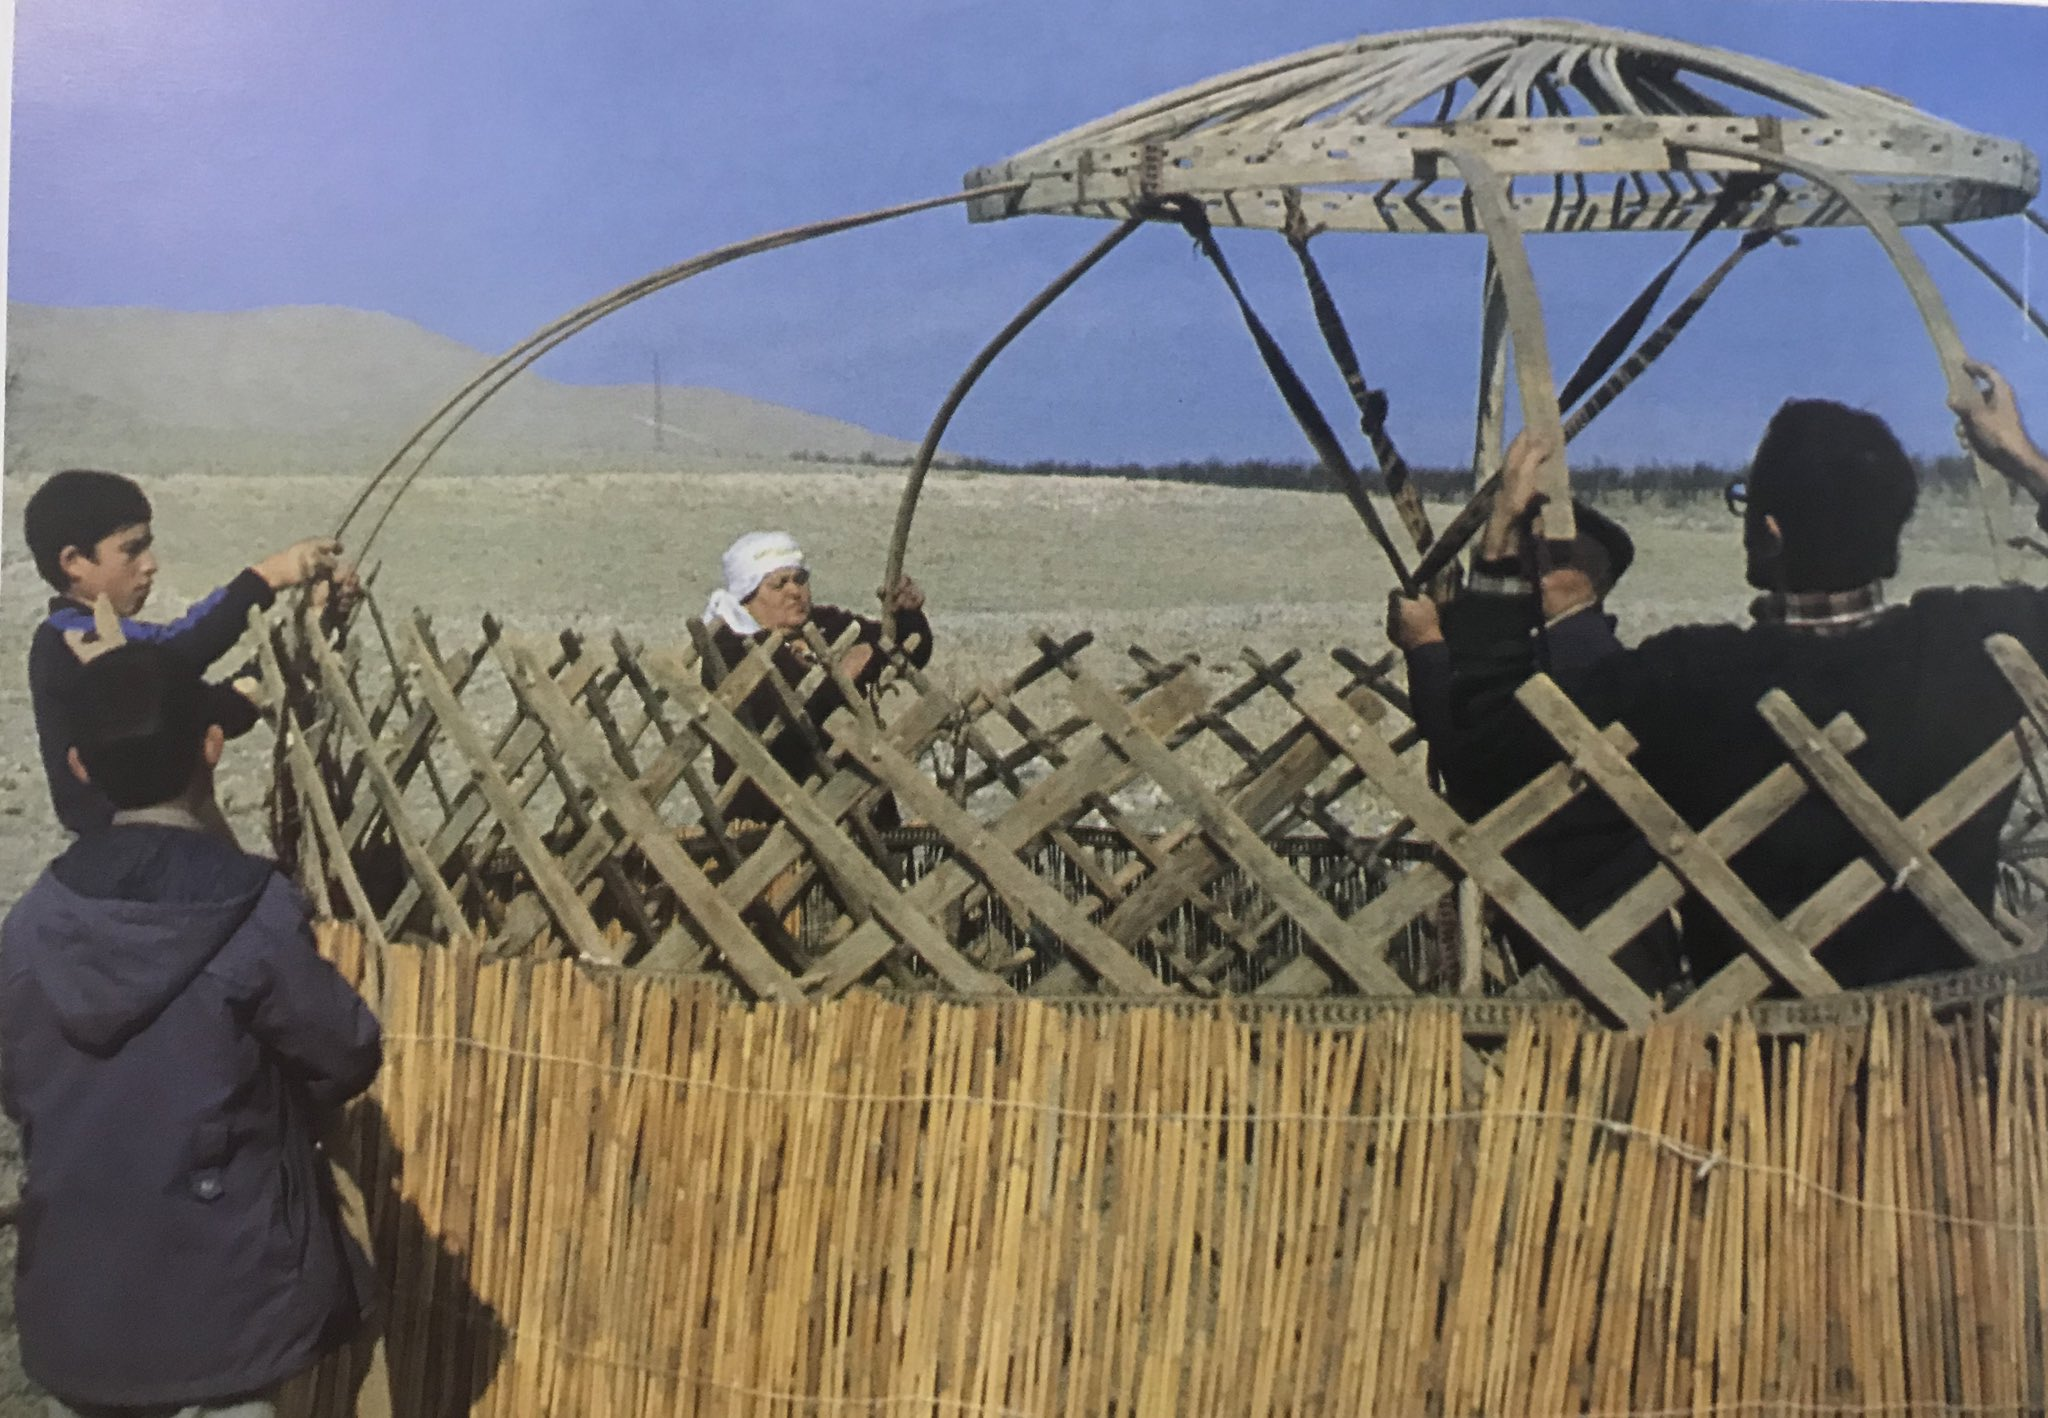 """Reed screens going around the tent, """"uğ"""" sticks added to """"tünlük"""" (the ceiling, uniting the walls and the upper part of Anatolian Tukmen tent, Derim, united to form the wall of the Anatolian Turkmen Tent, Bayat Tribe, Emirdag pasture, Afyon, West-Central Turkey, 1980s"""